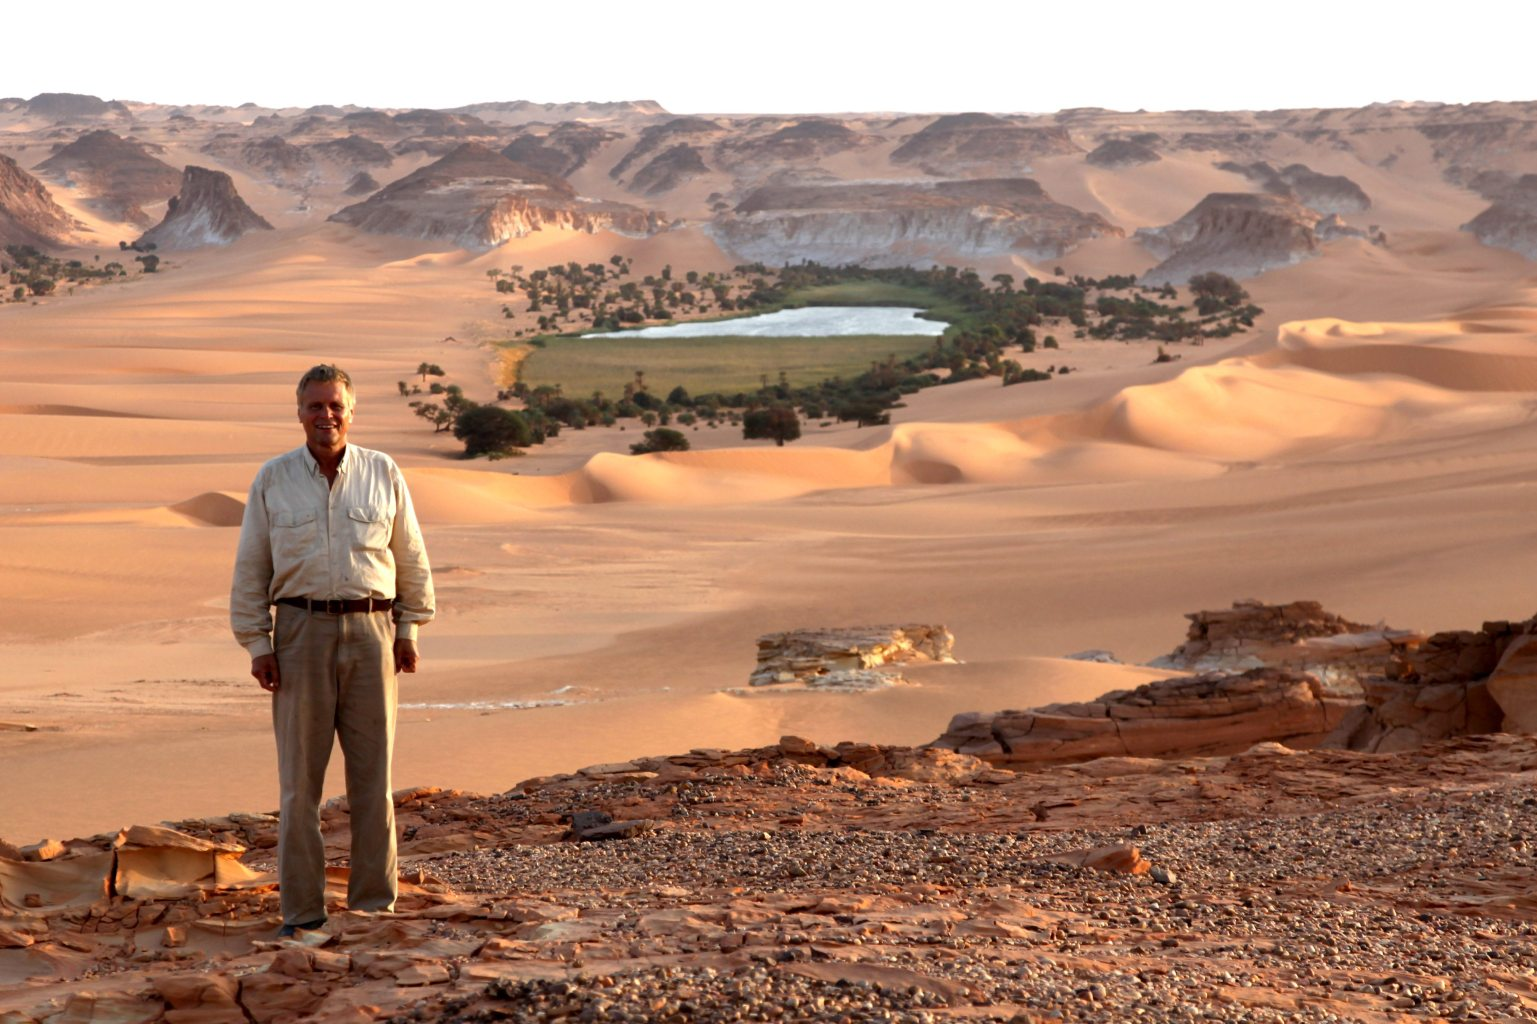 Image: Curiosity Driven Science is helping us study lakes like this oasis in Chad